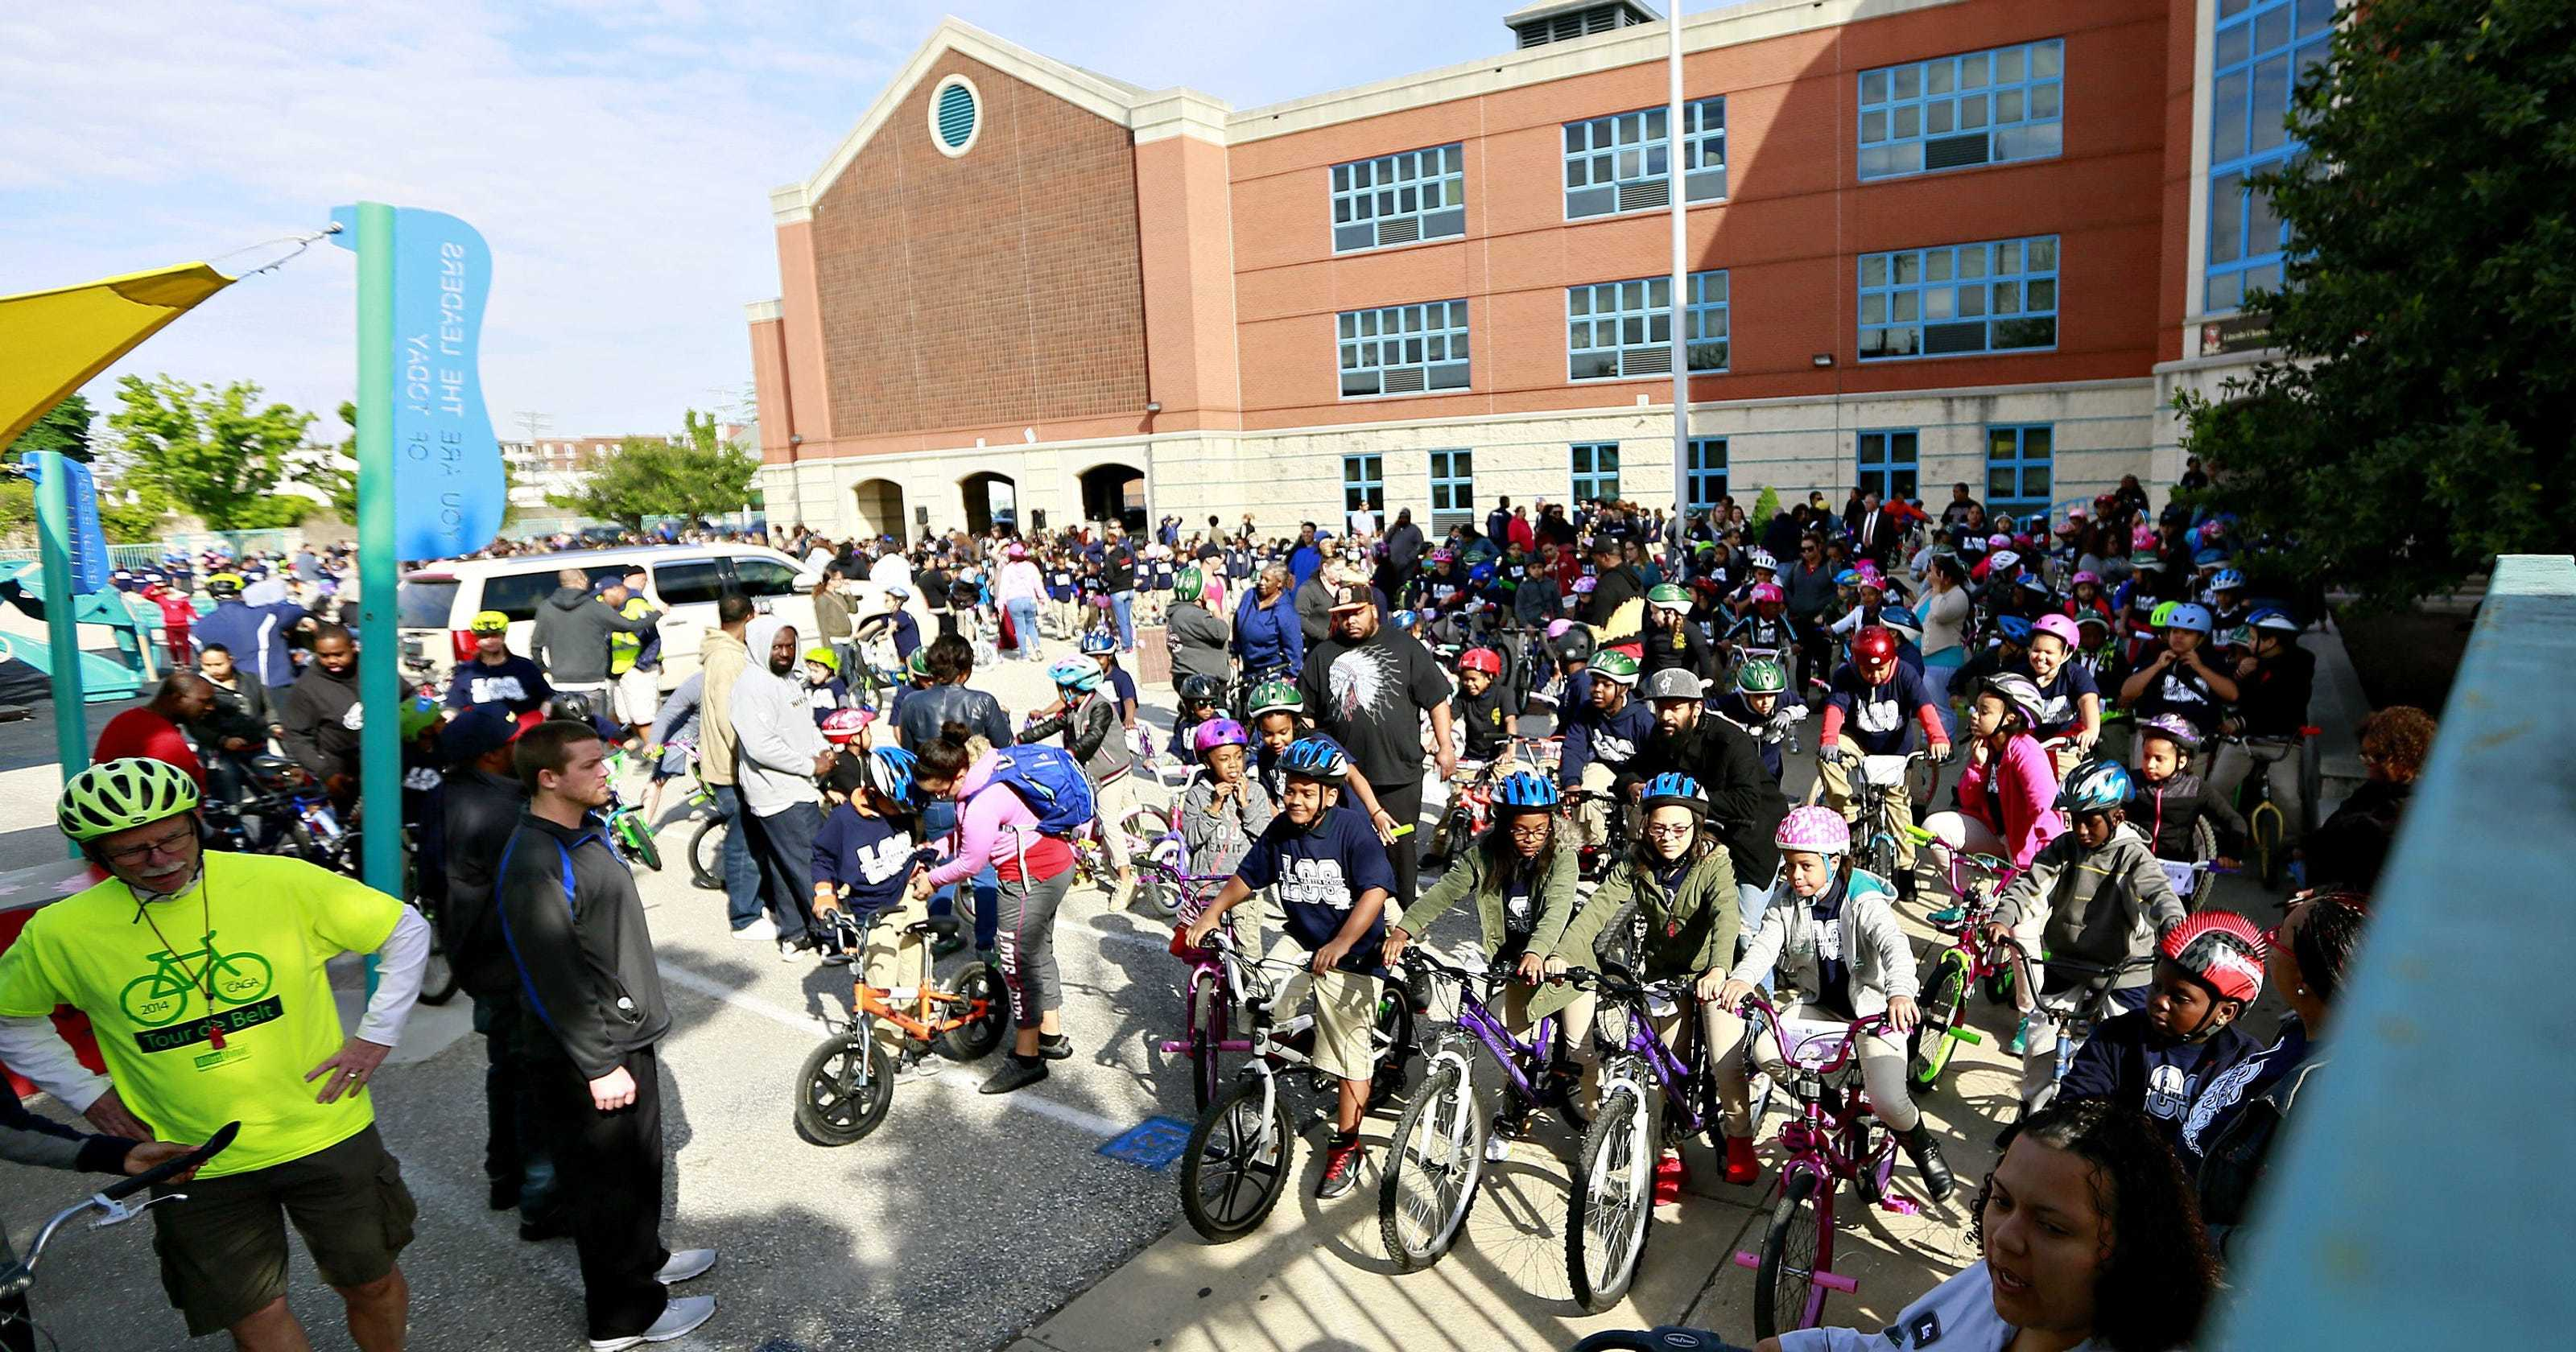 Students are ready to ride